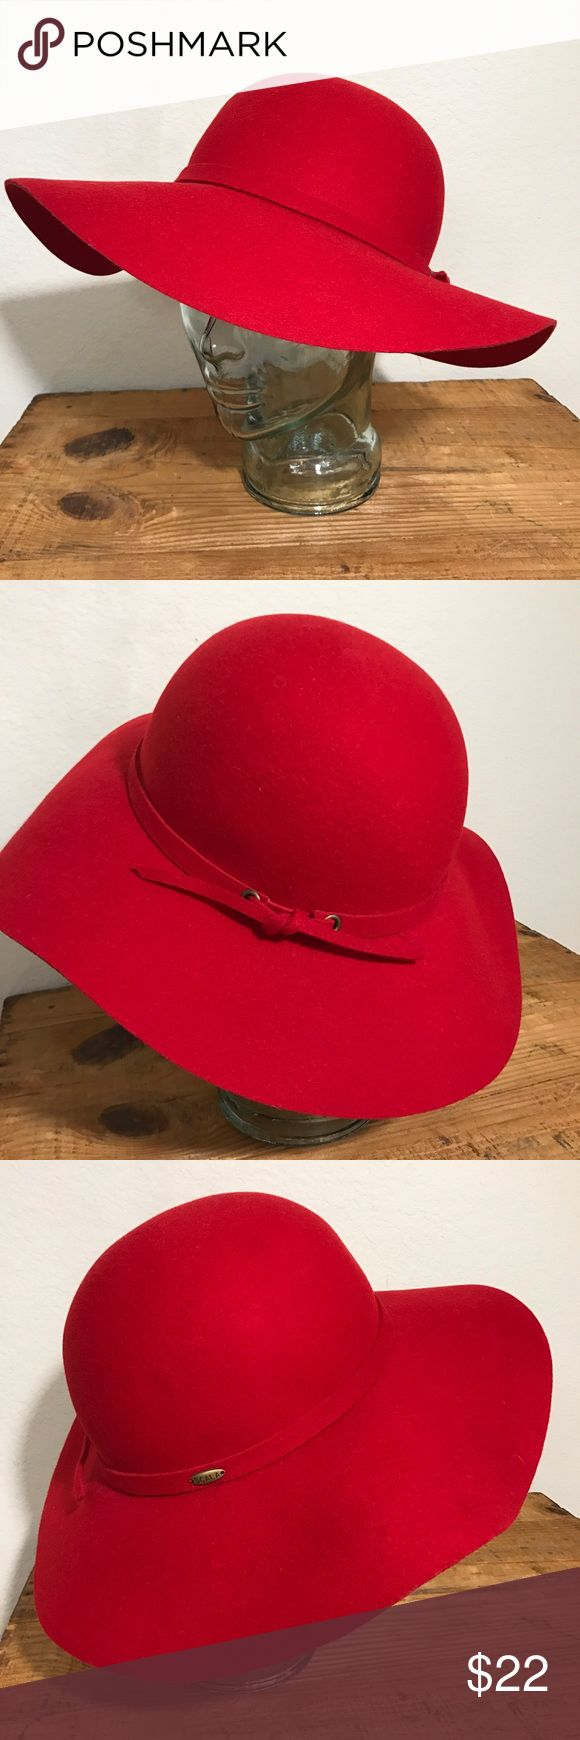 Scala Red 100% Wool Women Floppy Hat Scala Red 100% Wool Women Floppy Hat Church Dress Society Hat  Red Hat Society hat  EUC- Please see photos as we do consider them to be a part of the description. Scala Accessories Hats